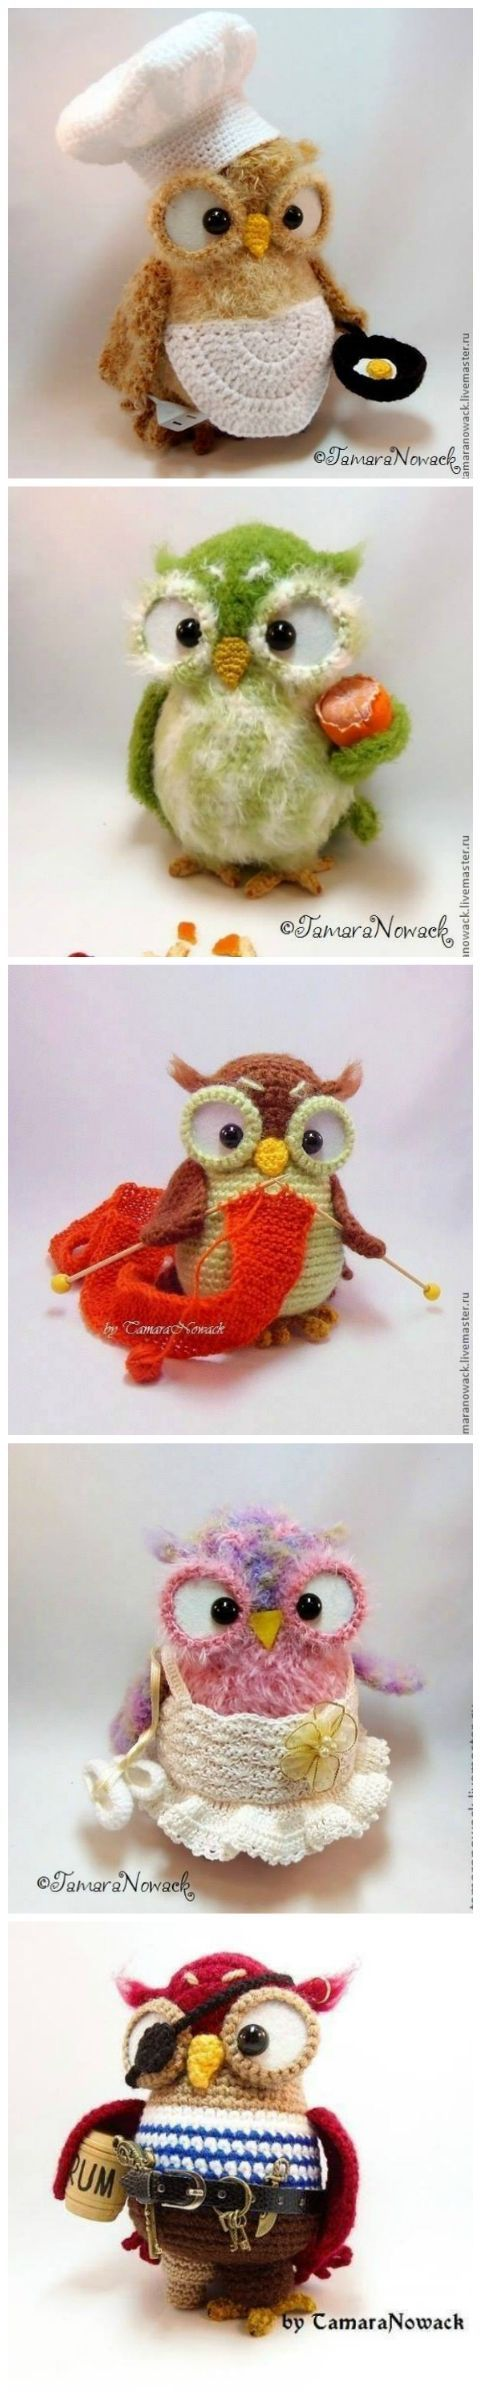 Owl Crochet Patterns by Tamara Nowack: